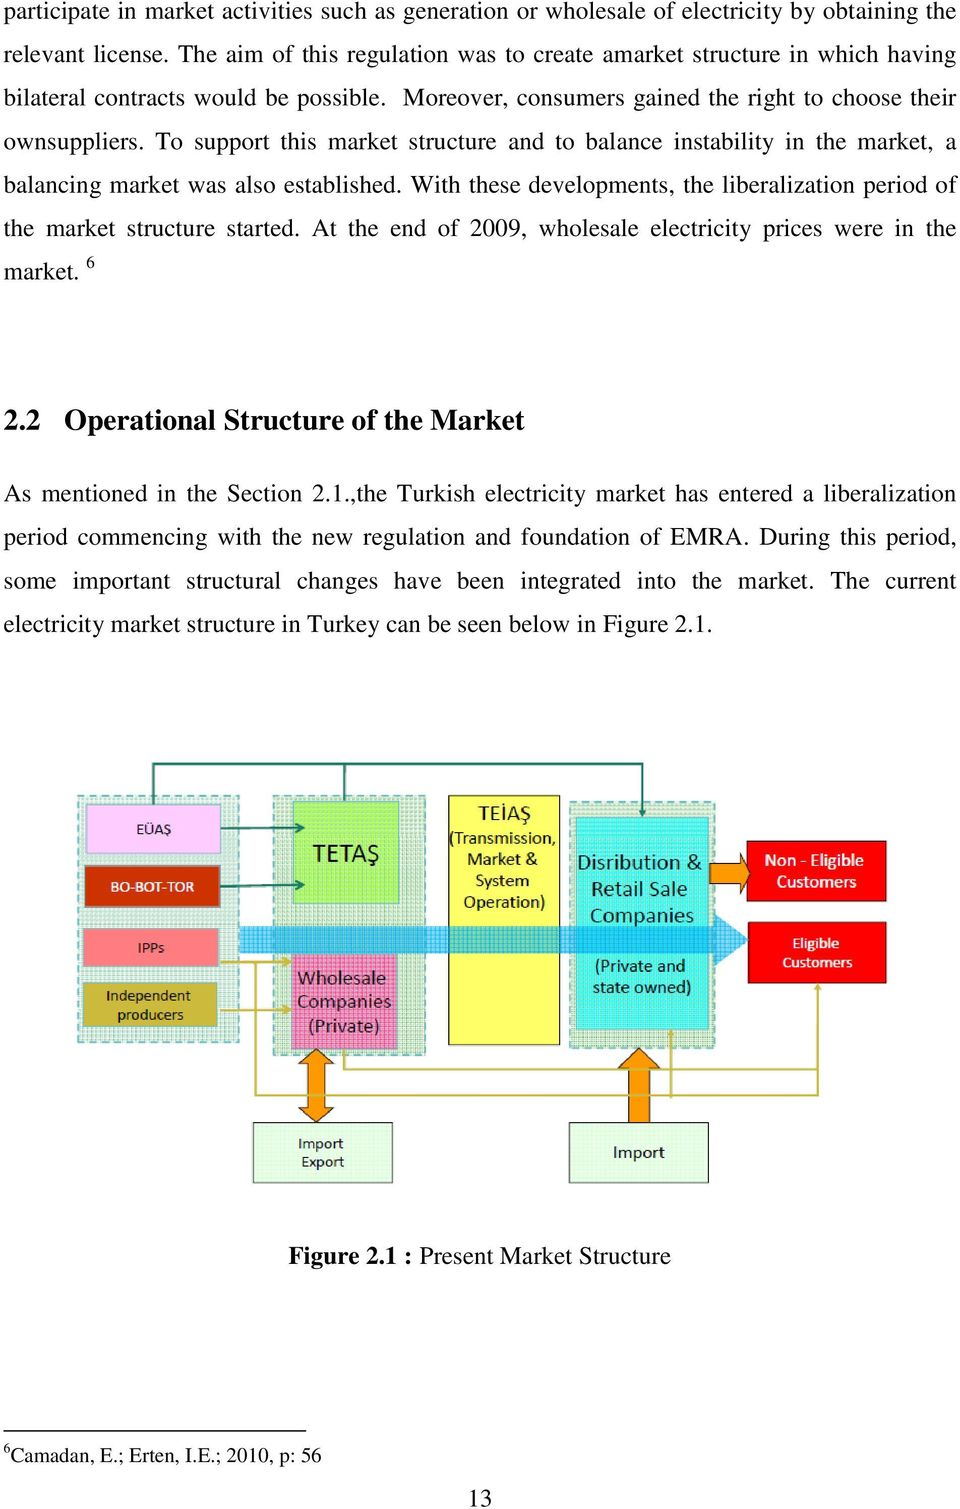 To support this market structure and to balance instability in the market, a balancing market was also established. With these developments, the liberalization period of the market structure started.